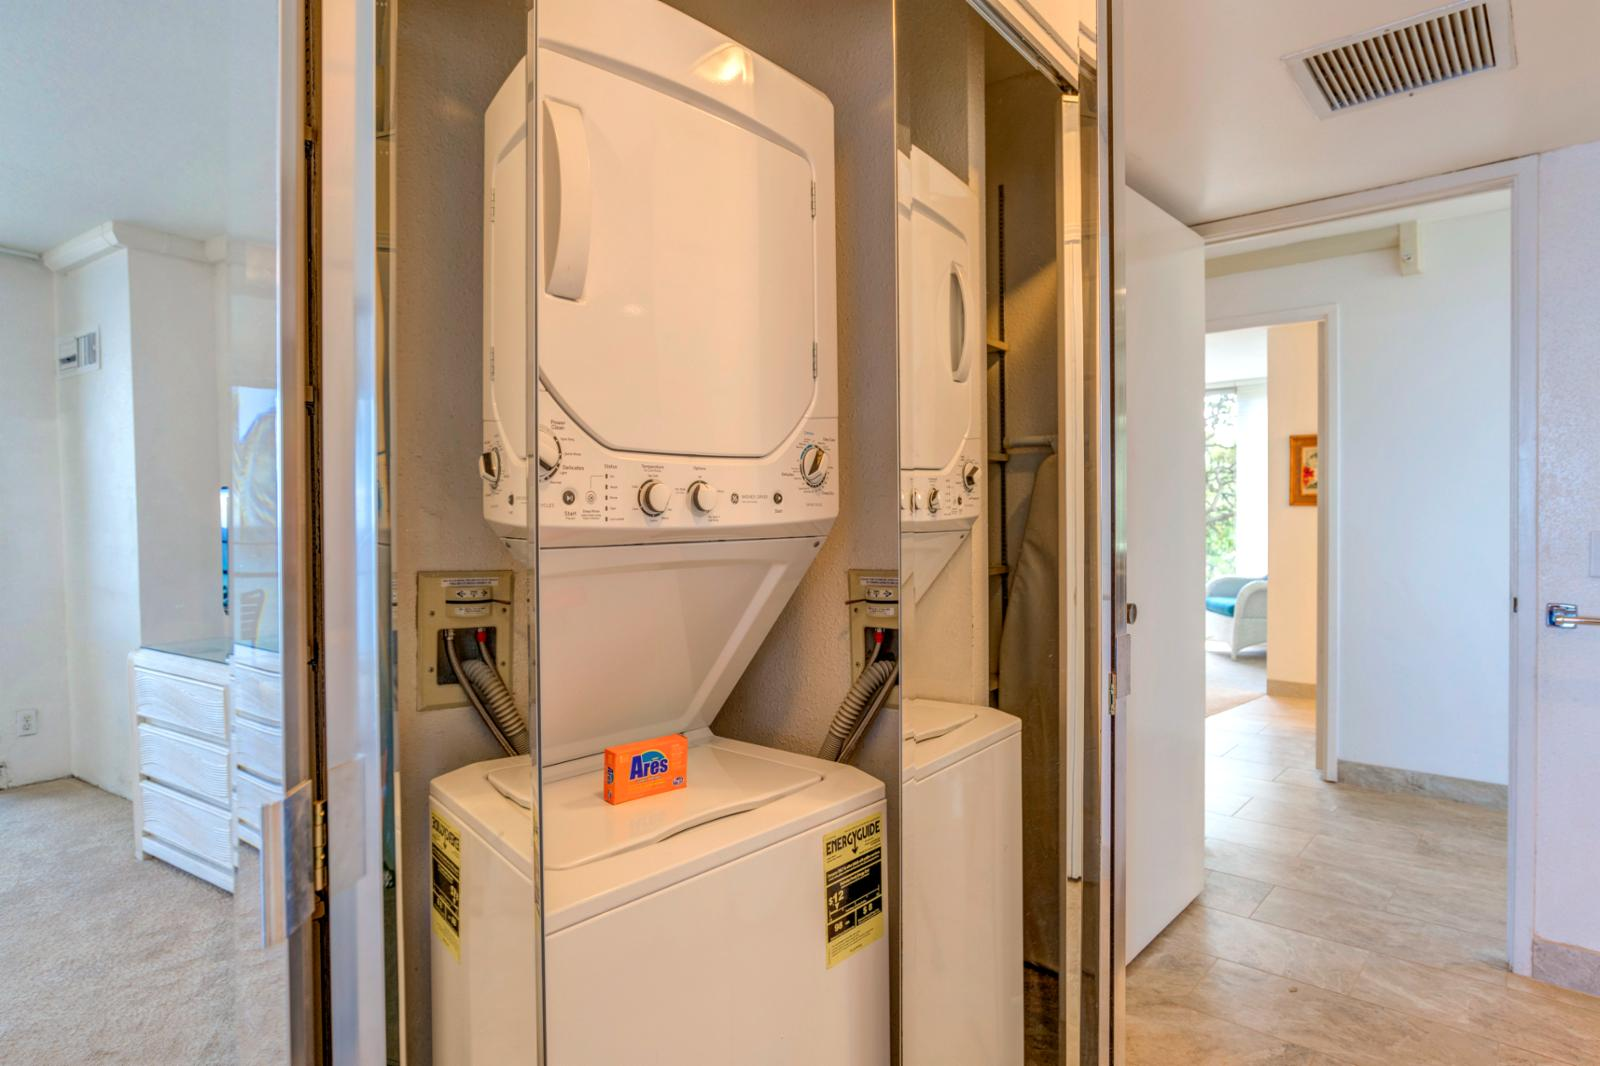 Washer and dryer in unit, ready for your use!